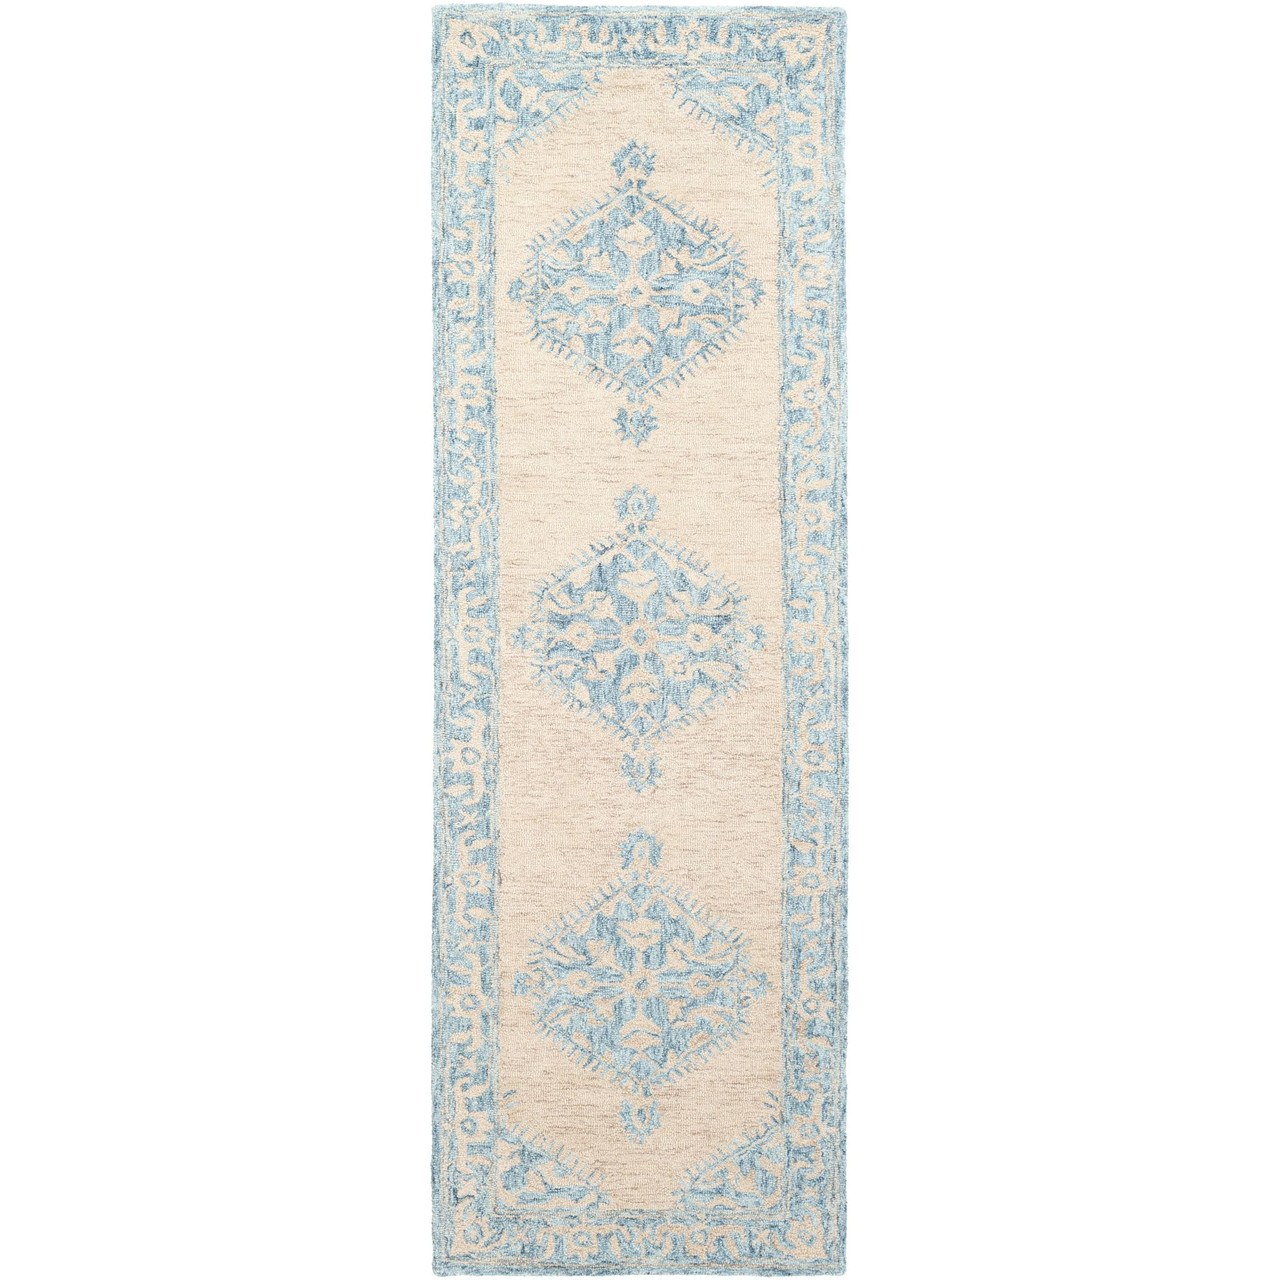 2 5 X 8 Classic Style Teal Blue Beige Rectangular Wool Area Rug Runner Christmas Central